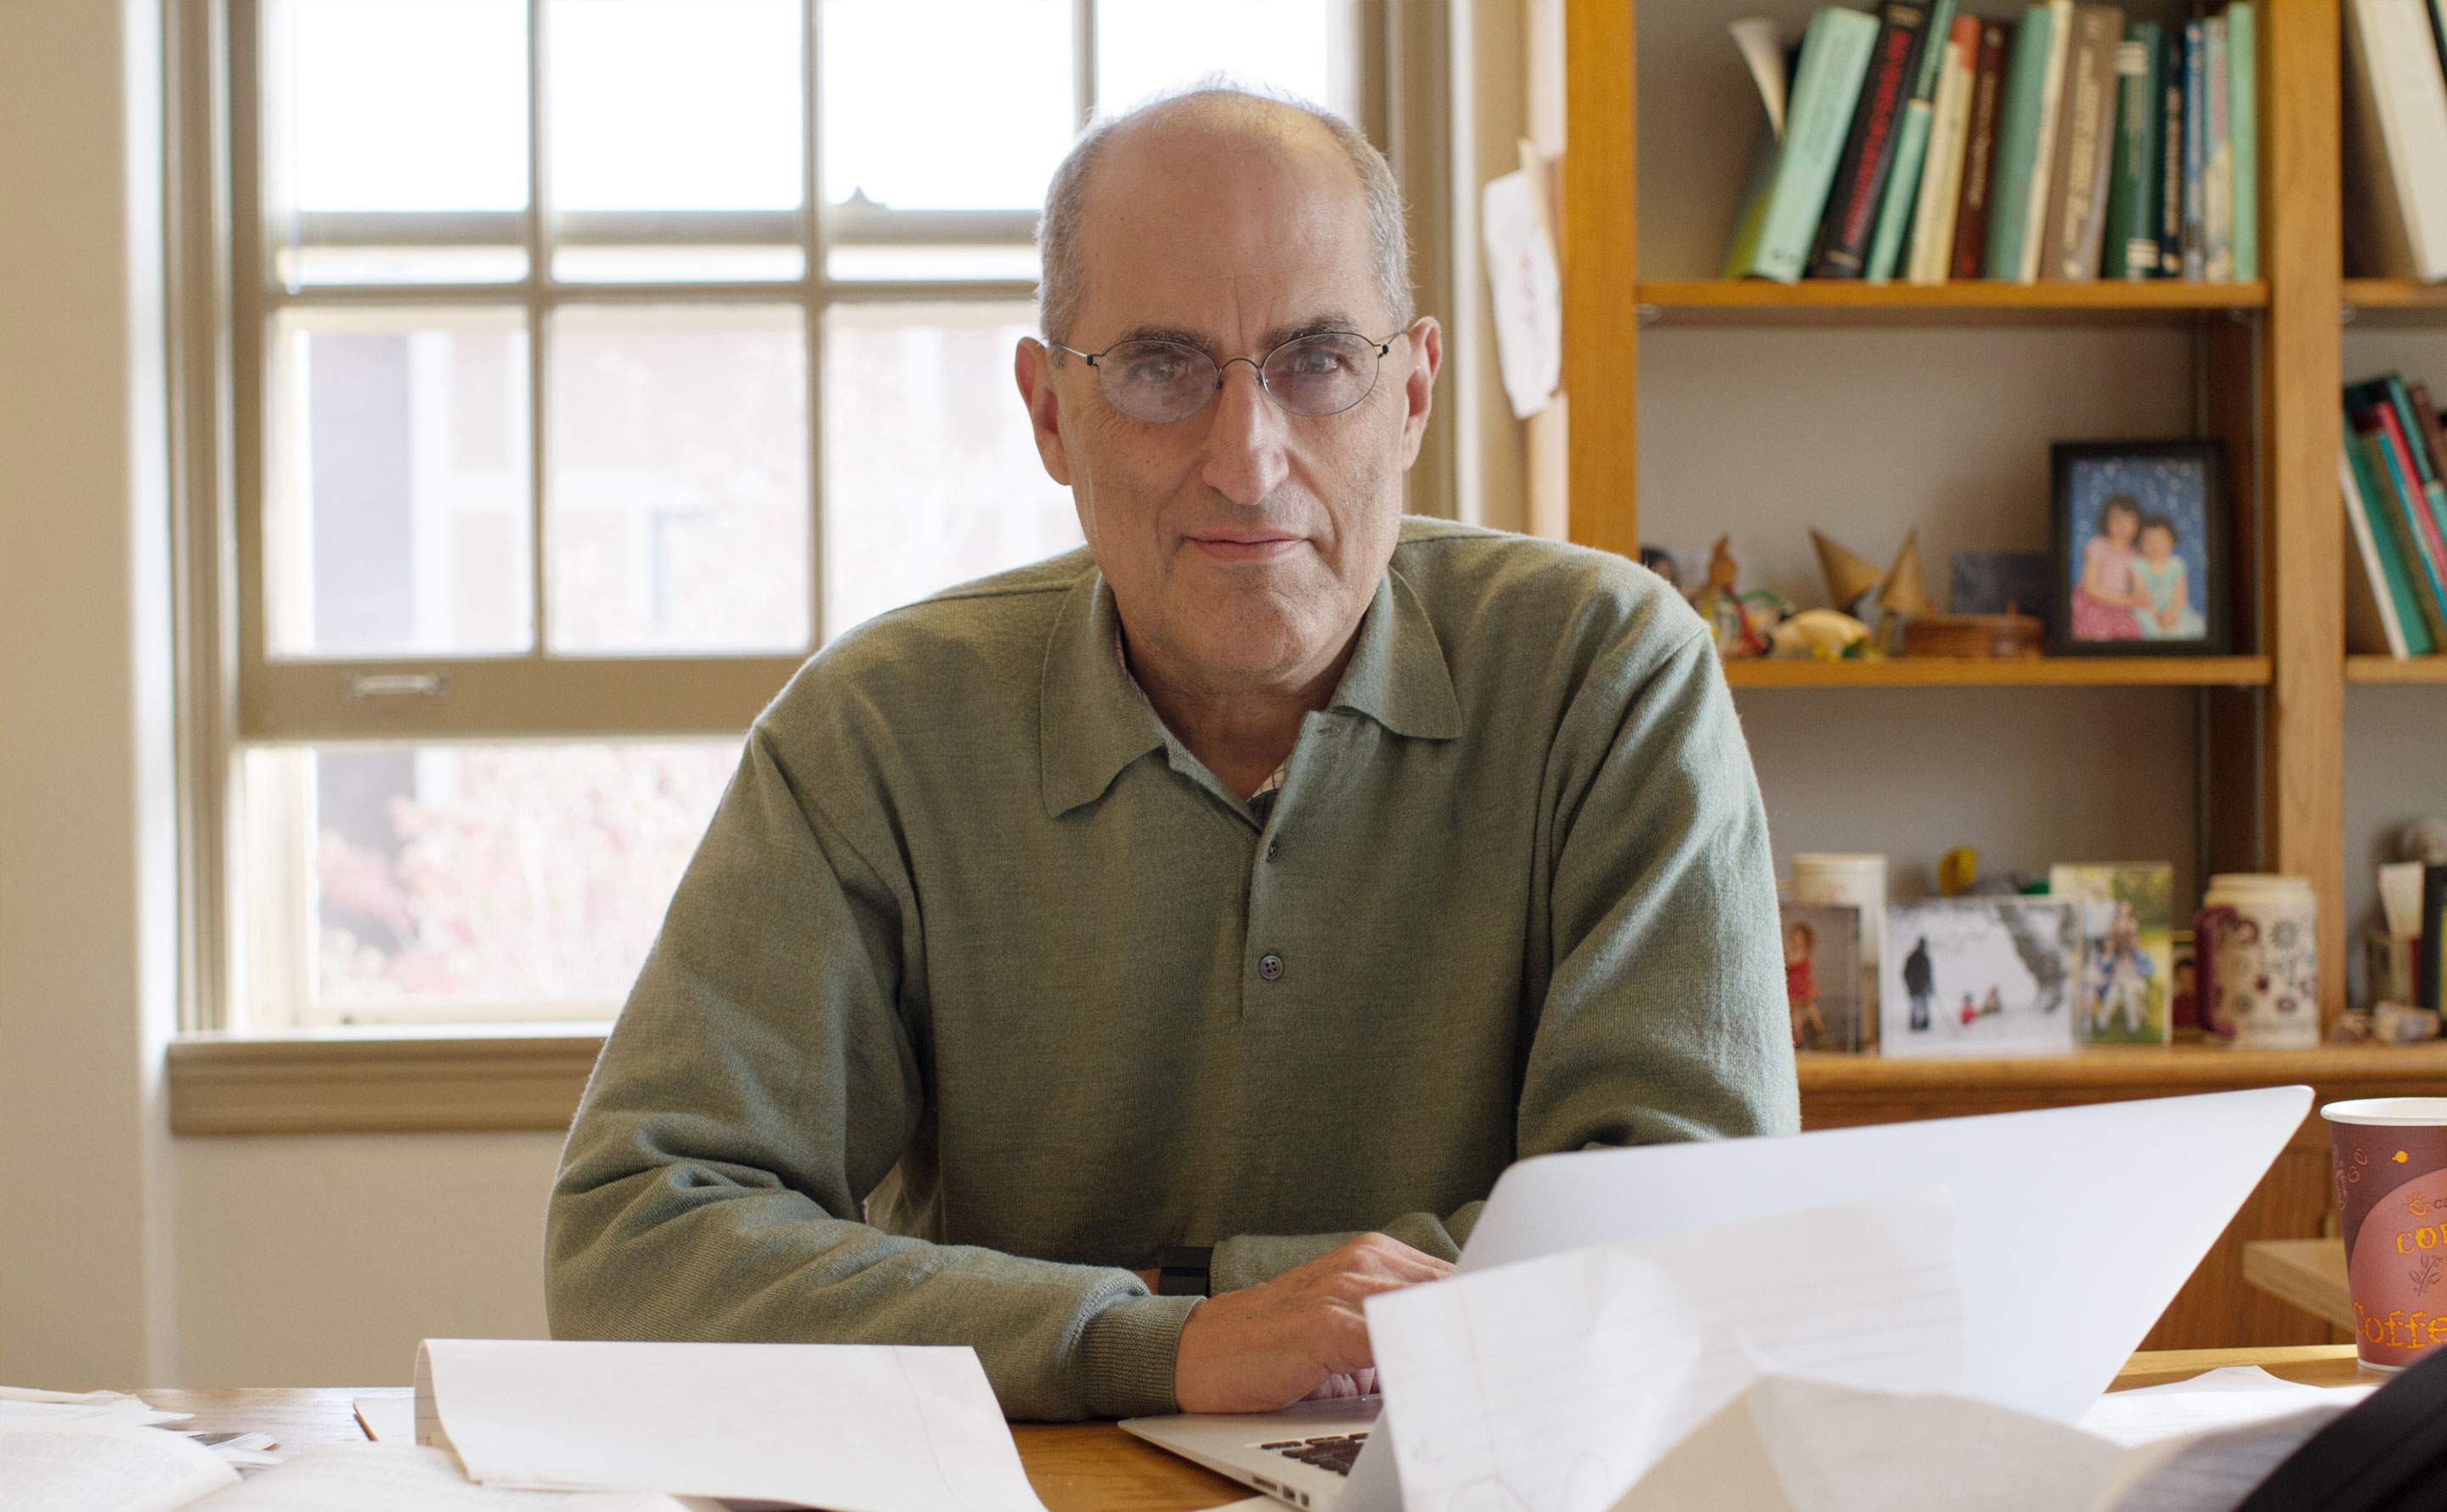 Edward Witten in his office at the Institute for Advanced Study in Princeton, New Jersey.